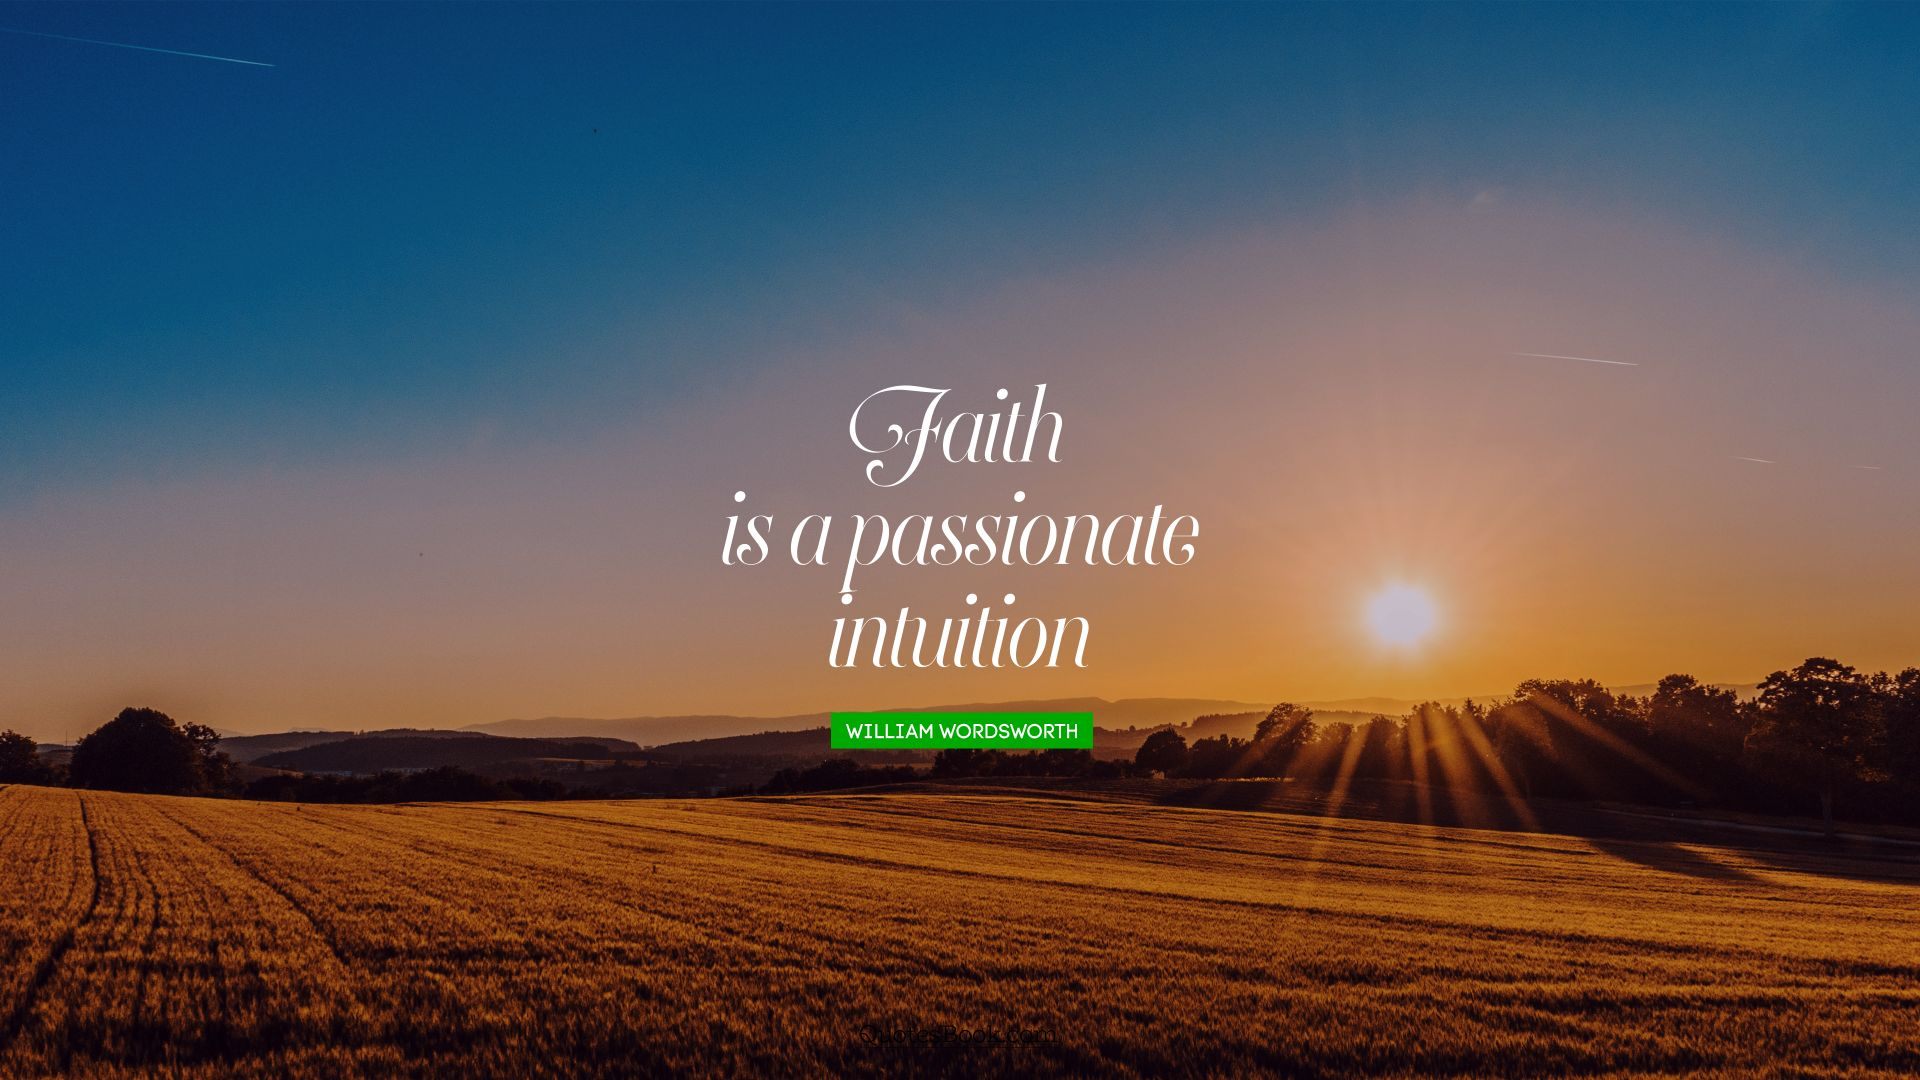 Faith is a passionate intuition. - Quote by William Wordsworth